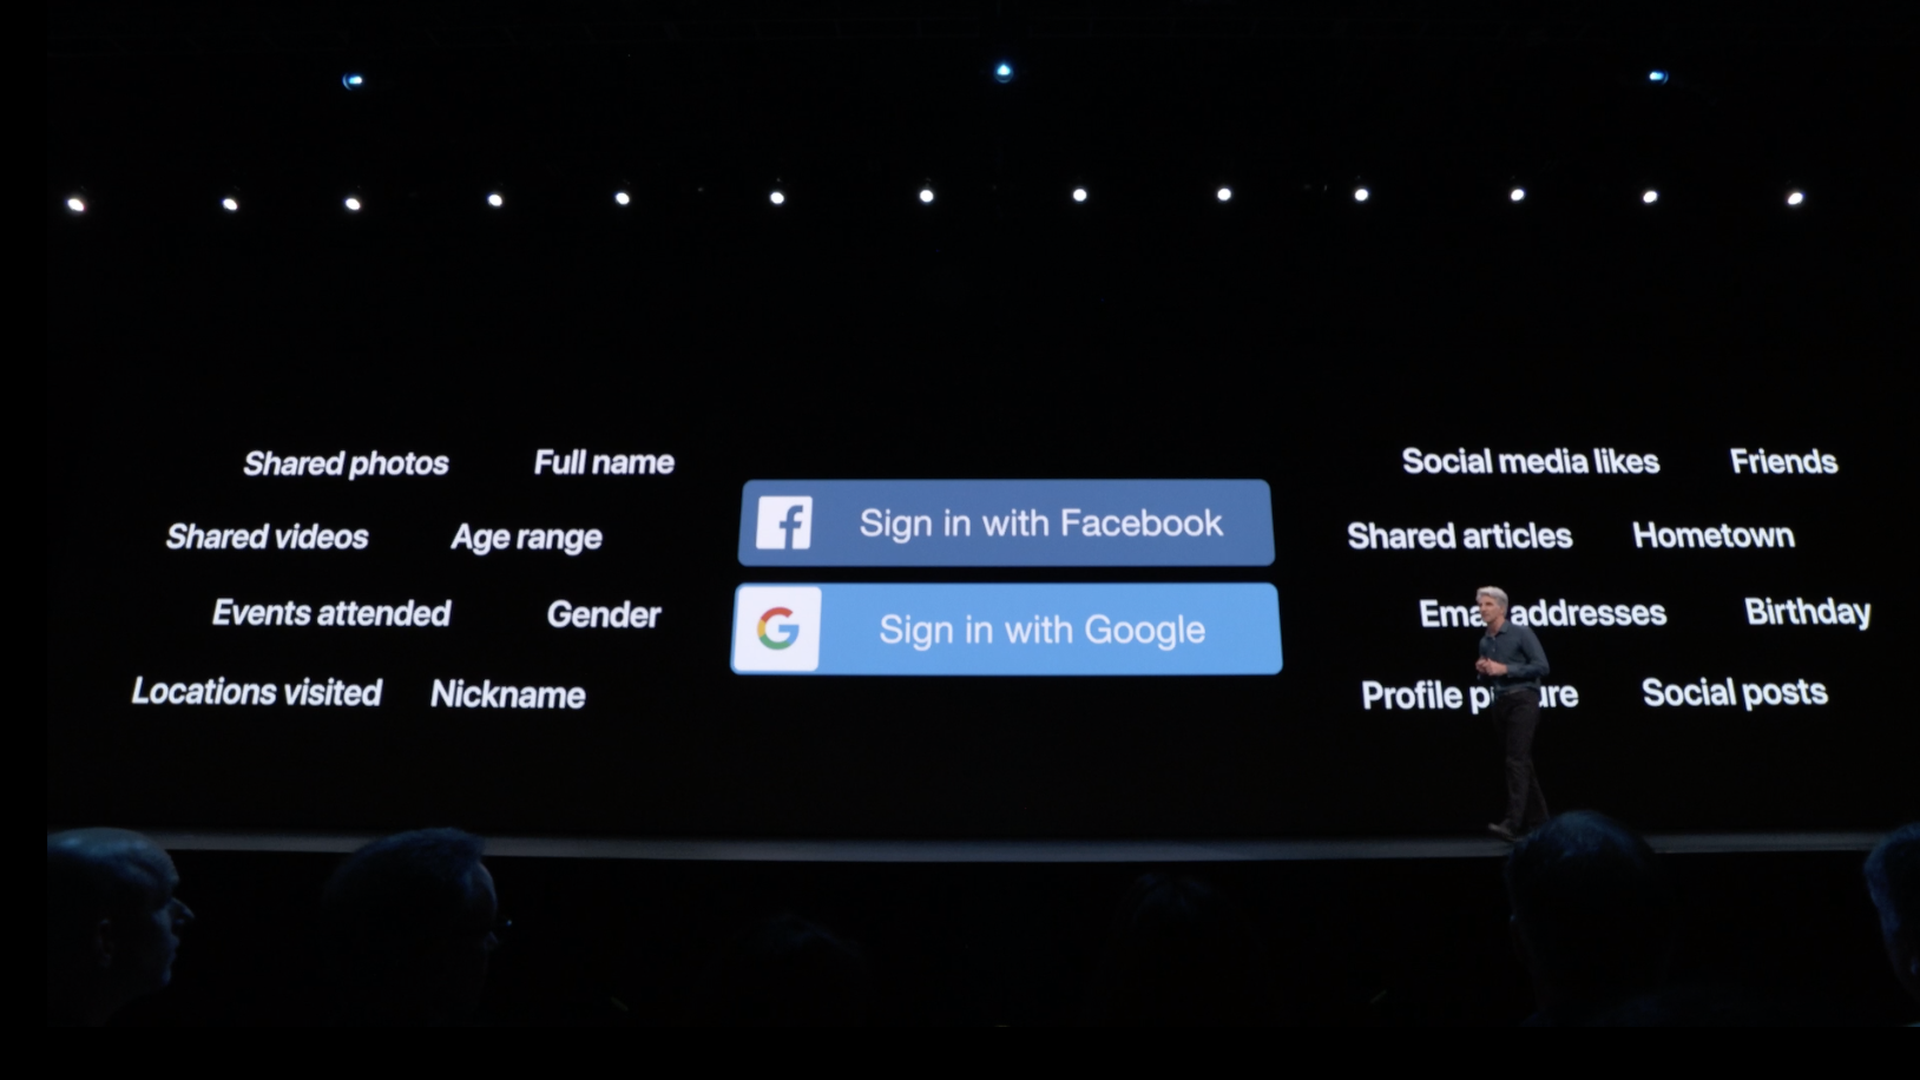 Apple iOS chief Craig Federighi outlining some of the drawbacks of Facebook and Google's authentication systems at WWDC 2019